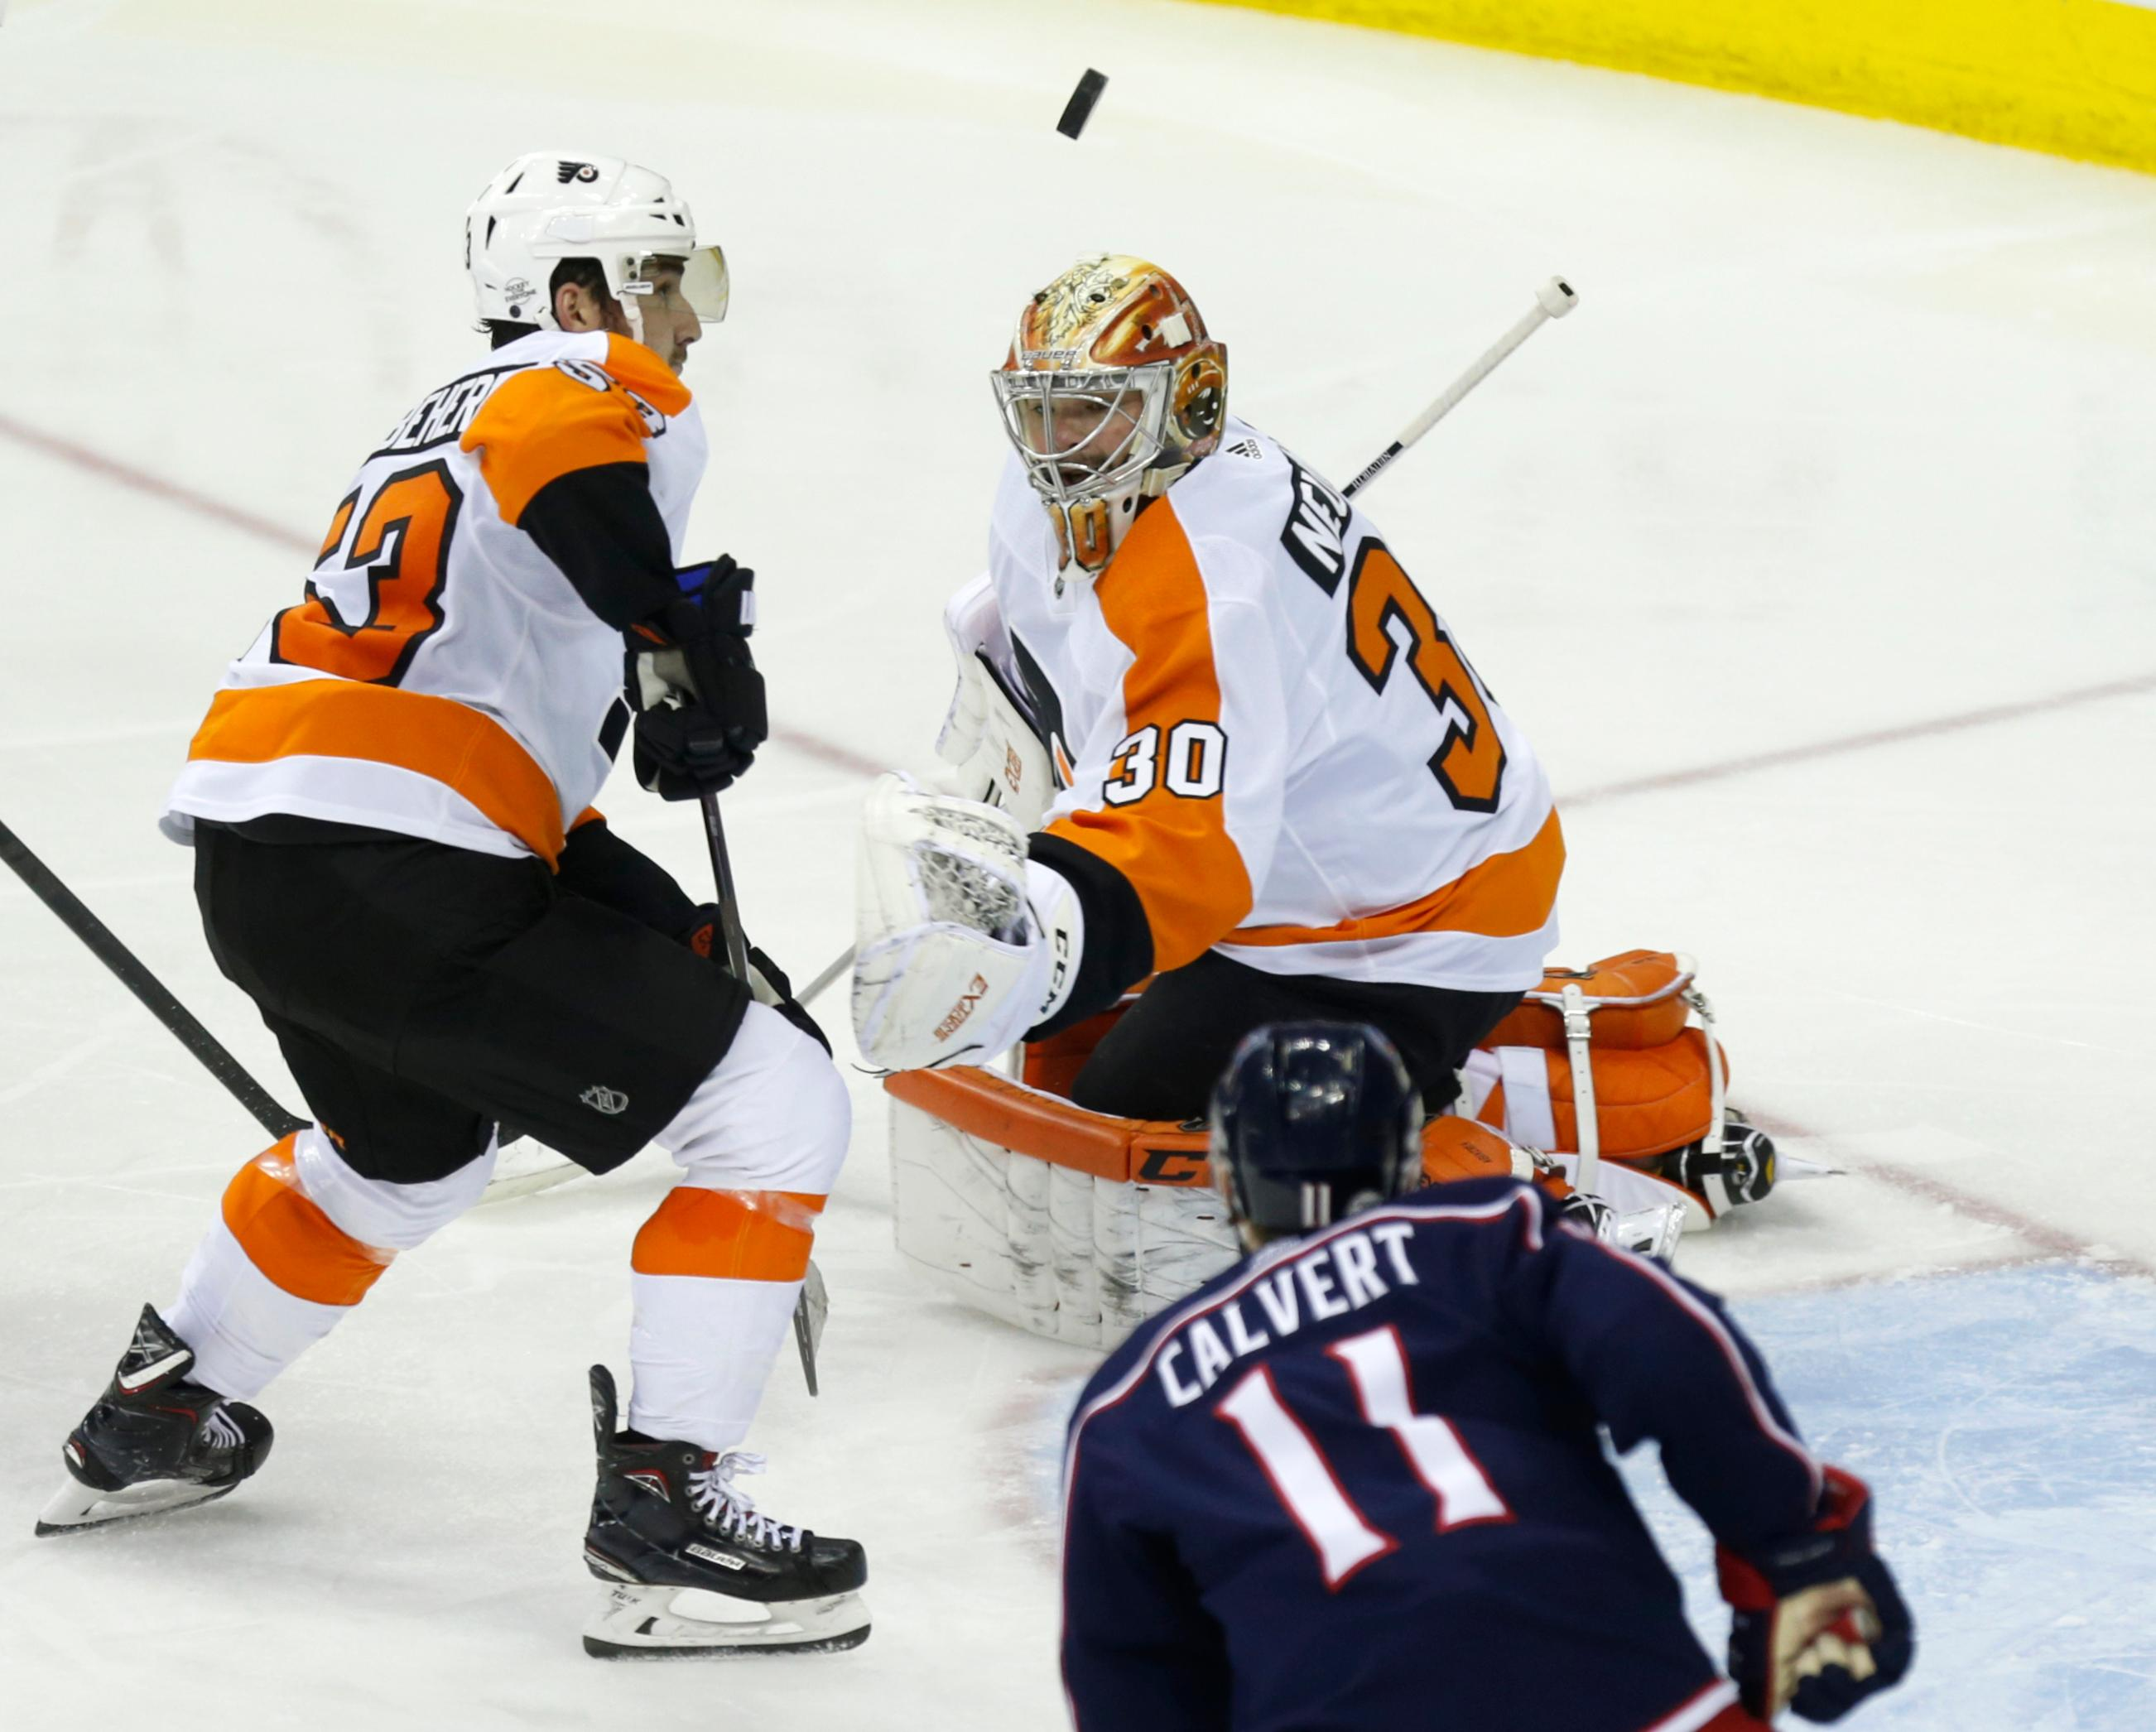 Philadelphia Flyers goalie Michal Neuvirth, top right, of the Czech Republic, stops a shot in front of Columbus Blue Jackets forward Matt Calvert (11) as Flyers defenseman Shayne Gostisbehere helps Neuvirth during the third period of an NHL hockey game in Columbus, Ohio, Friday, Feb. 16, 2018. The Flyers won 2-1 in overtime. (AP Photo/Paul Vernon)